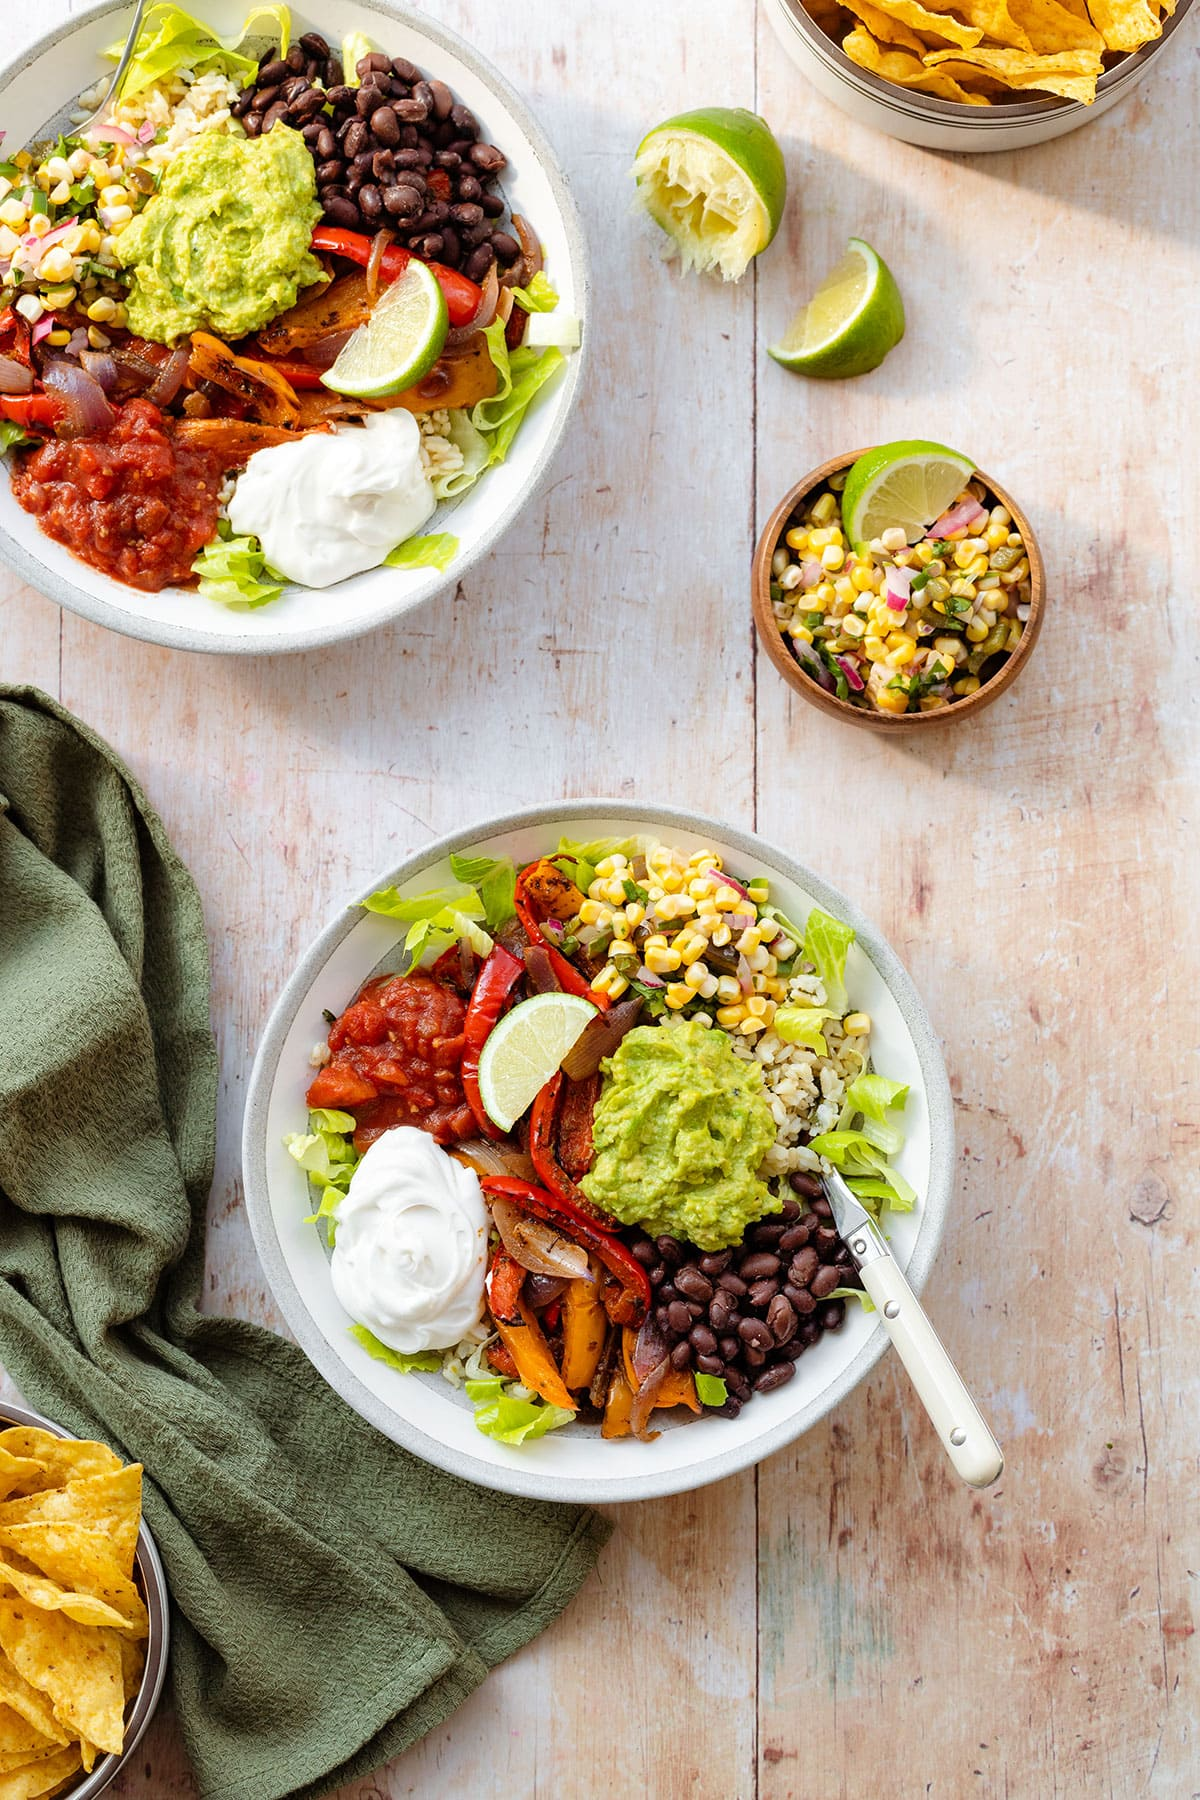 A photo of veggie burrito bowl in a grey bowl with a white rim on a light wooden background with a green kitchen towel on the left. In the bowl there is brown rice, corn salsa, tomato salsa, sour cream, guacamole, black beans, and roasted peppers.